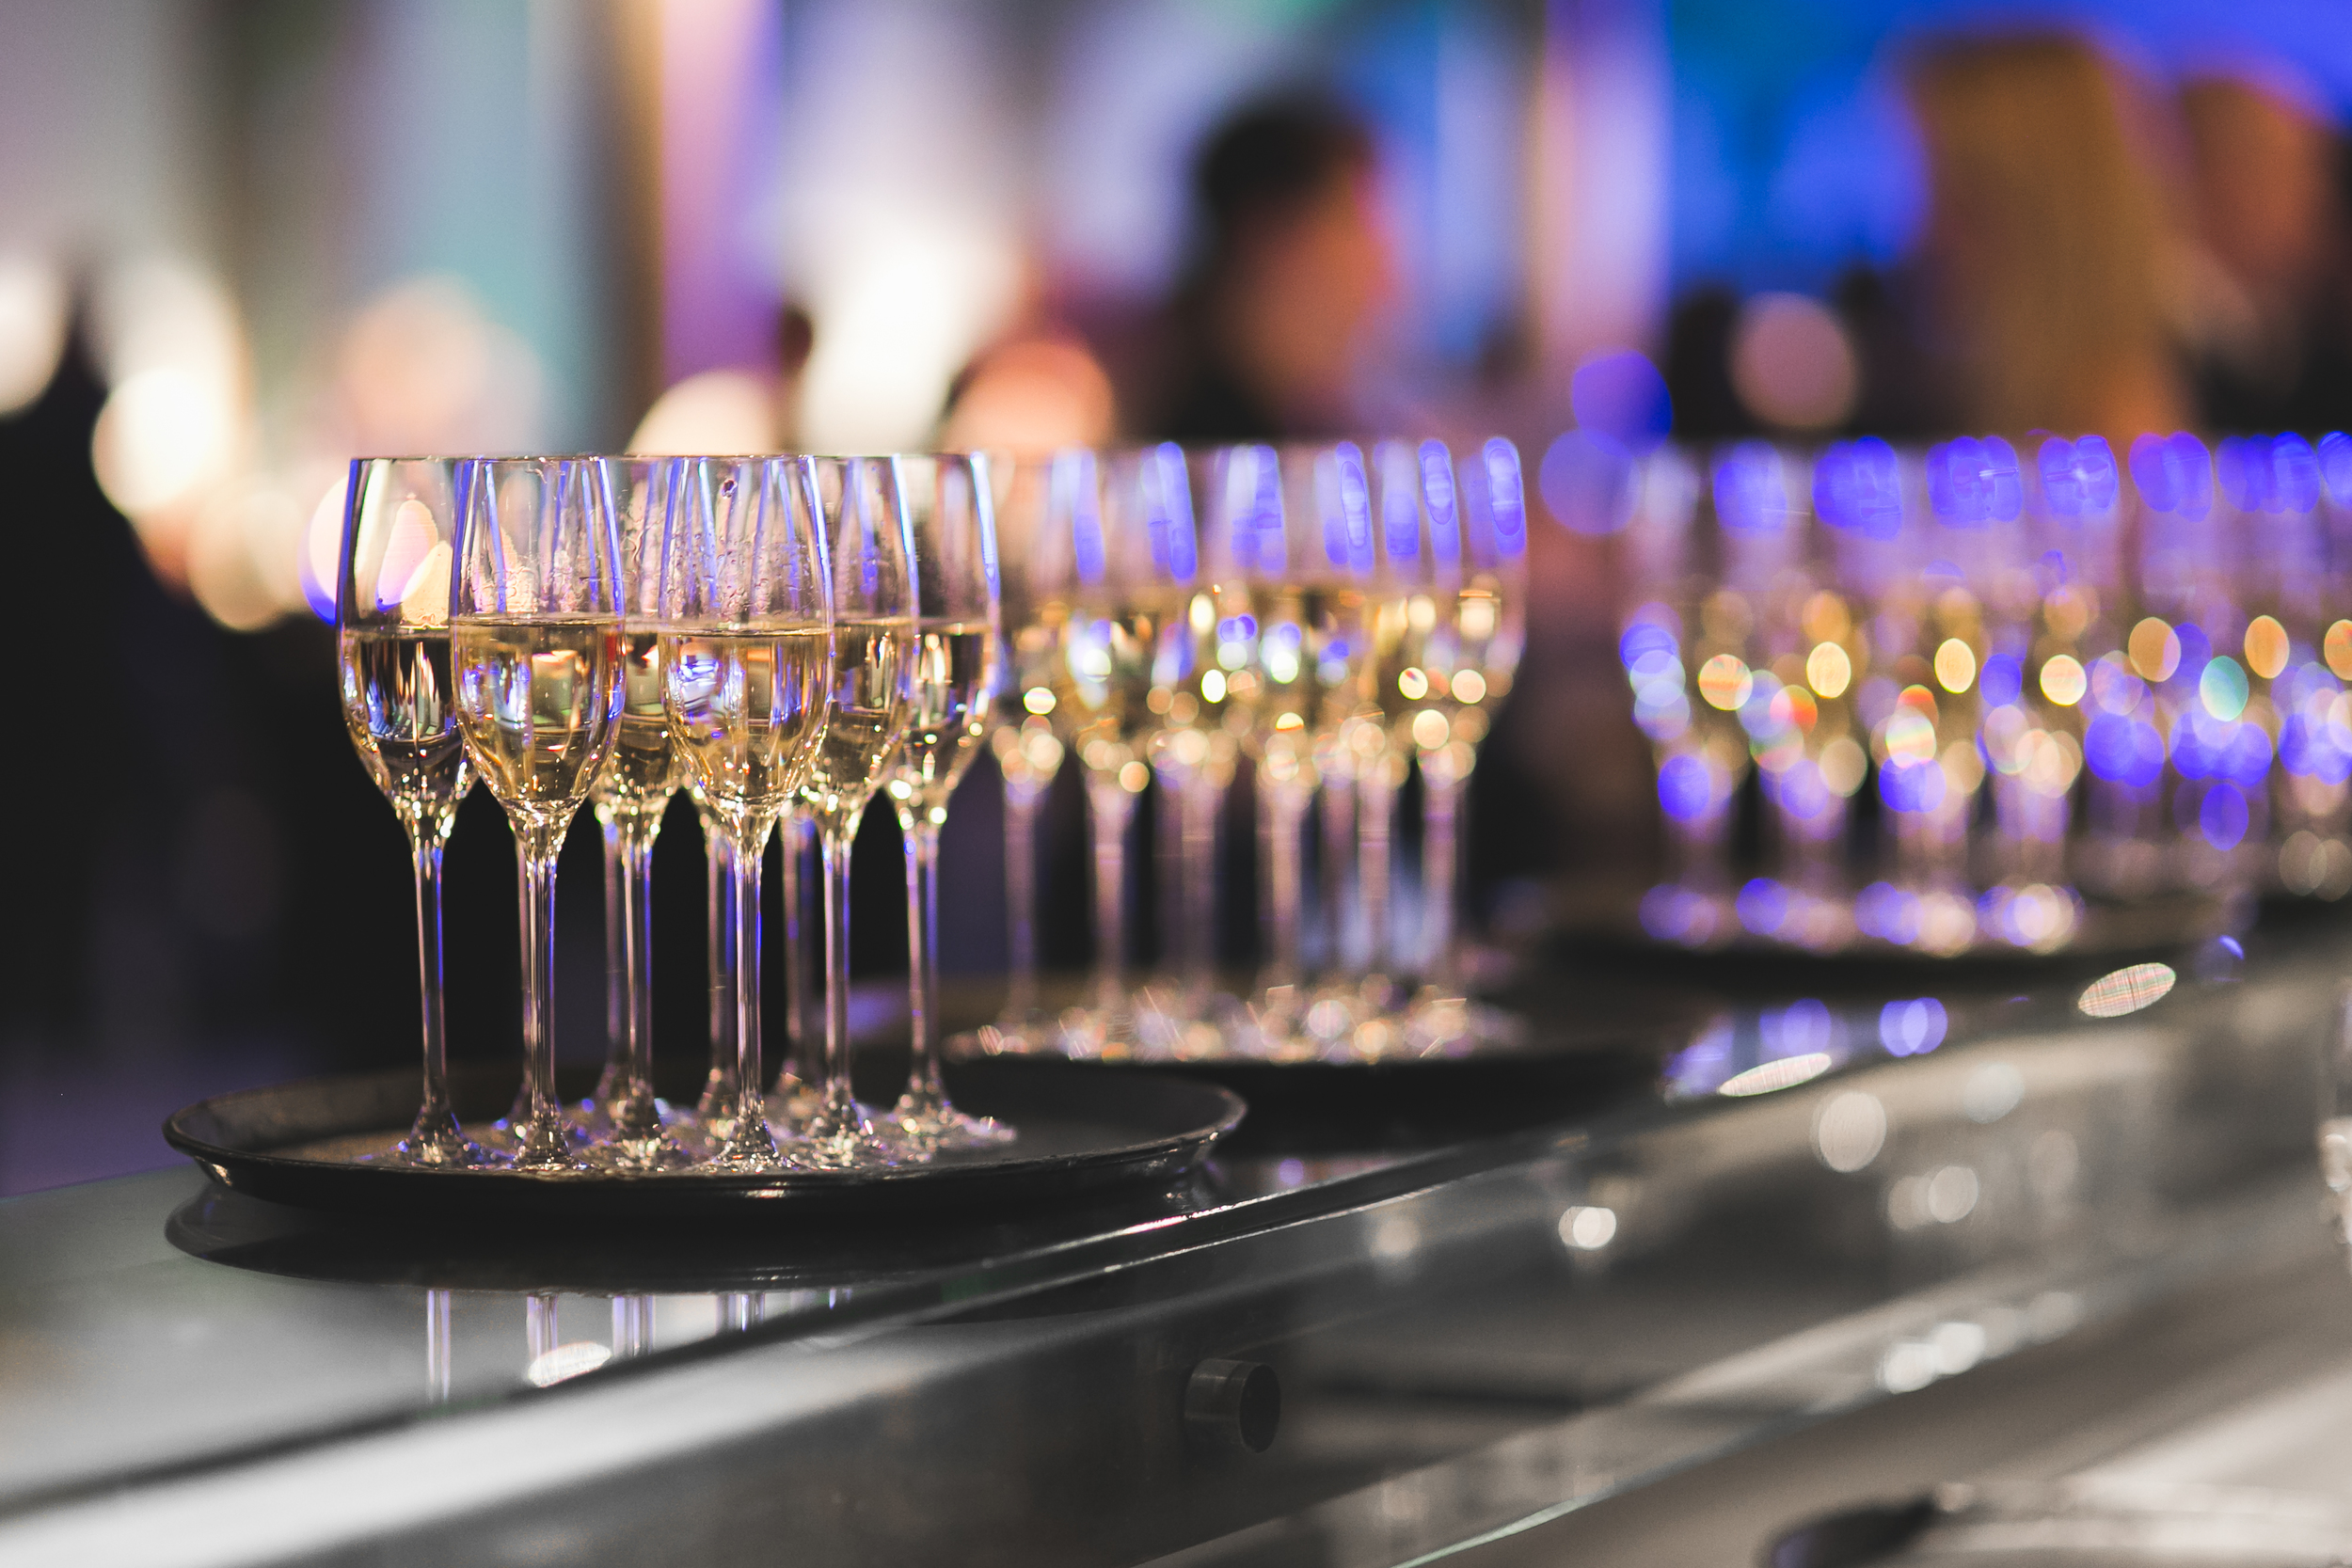 WE HAVE NEARLY 40 YEARS OF EXPERIENCE   Providing superior service to any & all events.